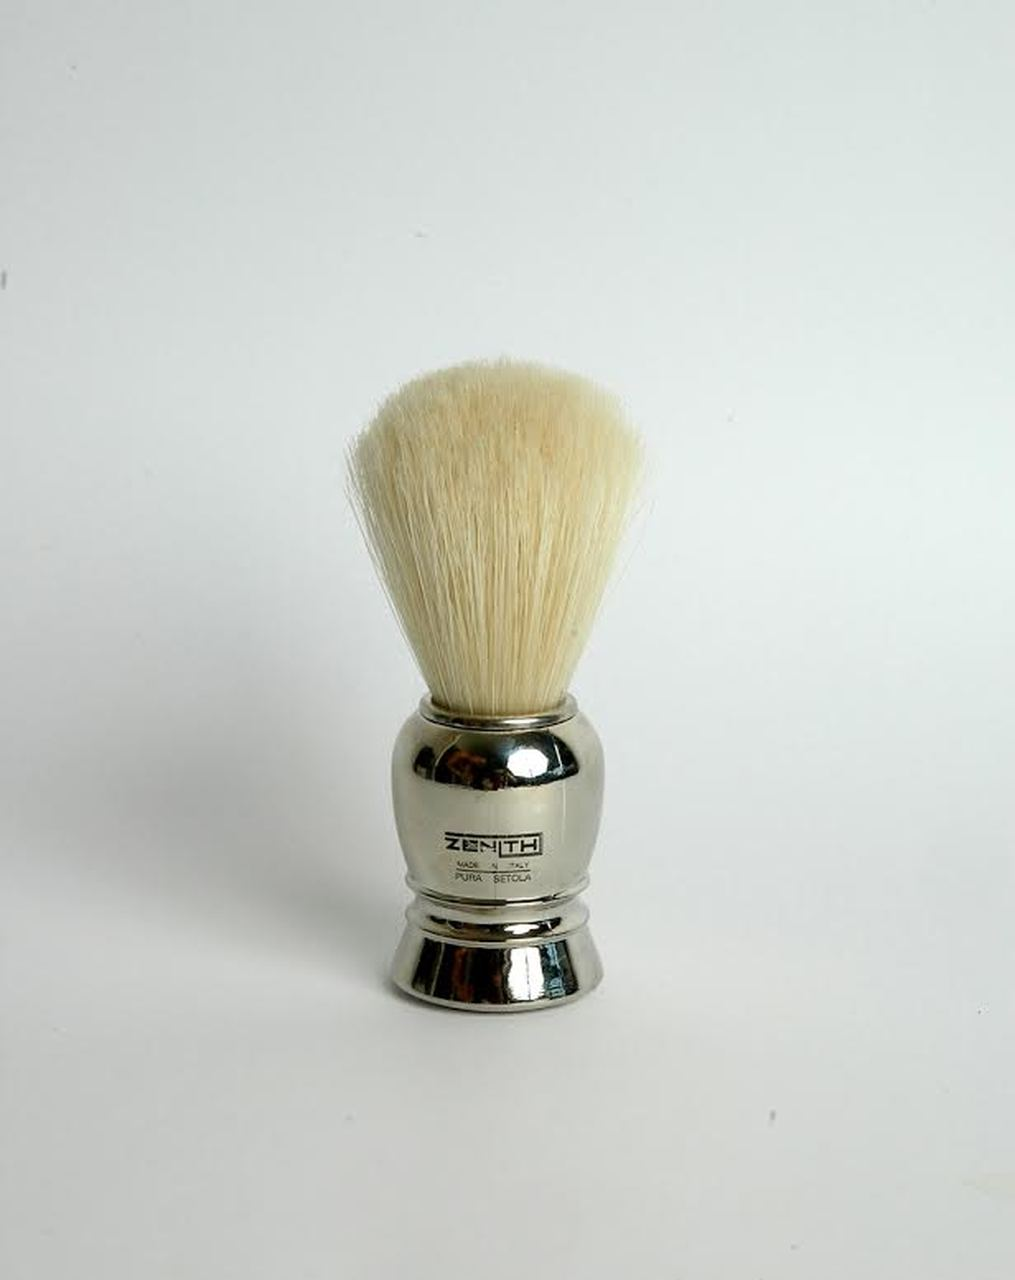 Shaving Brushes - Badger or Boar Bristle?